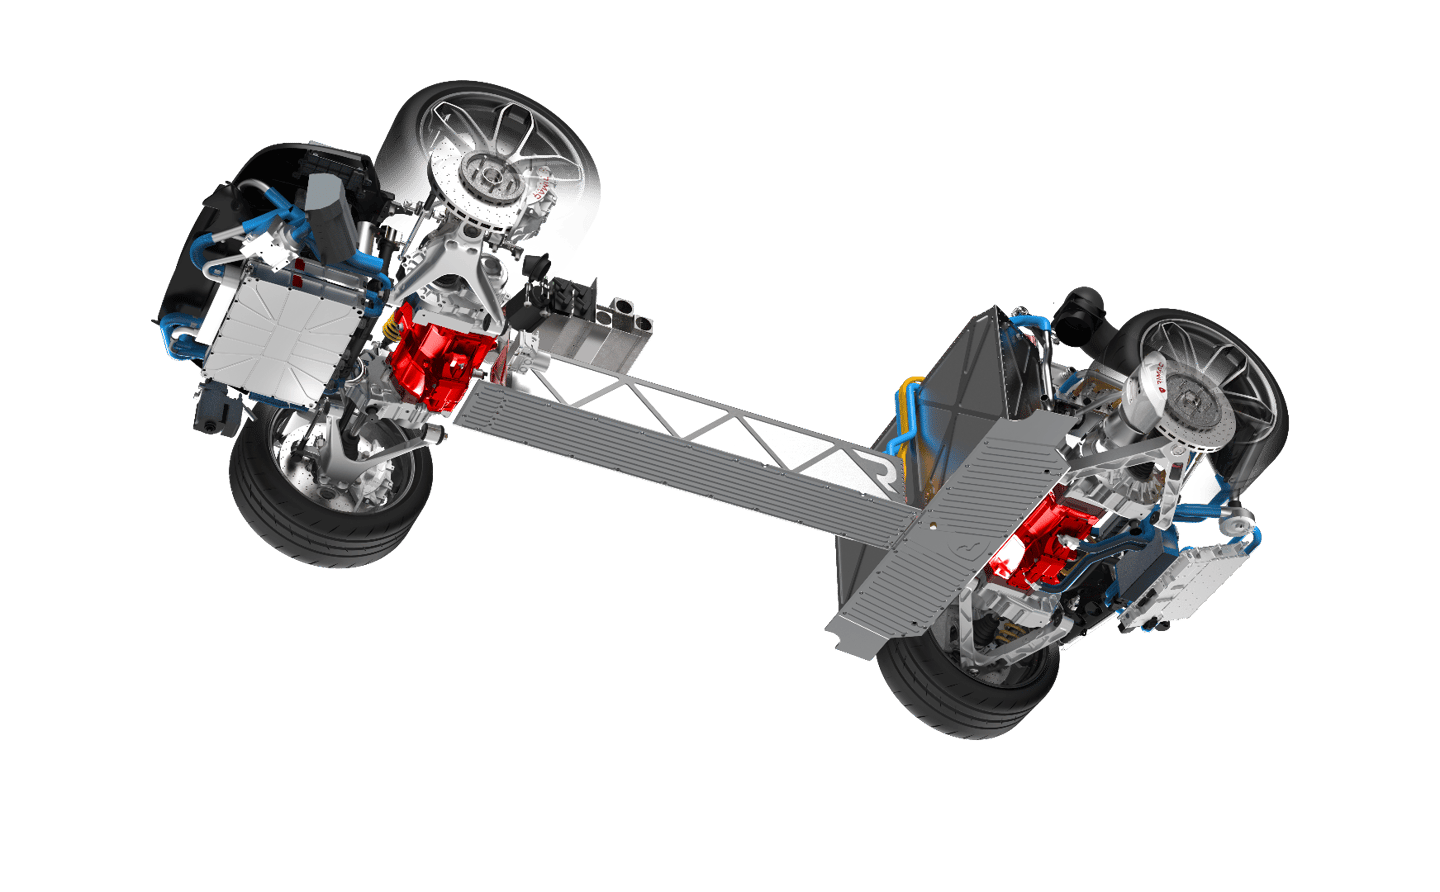 The Concept_One's drivetrain is based around four permanent magnet motors